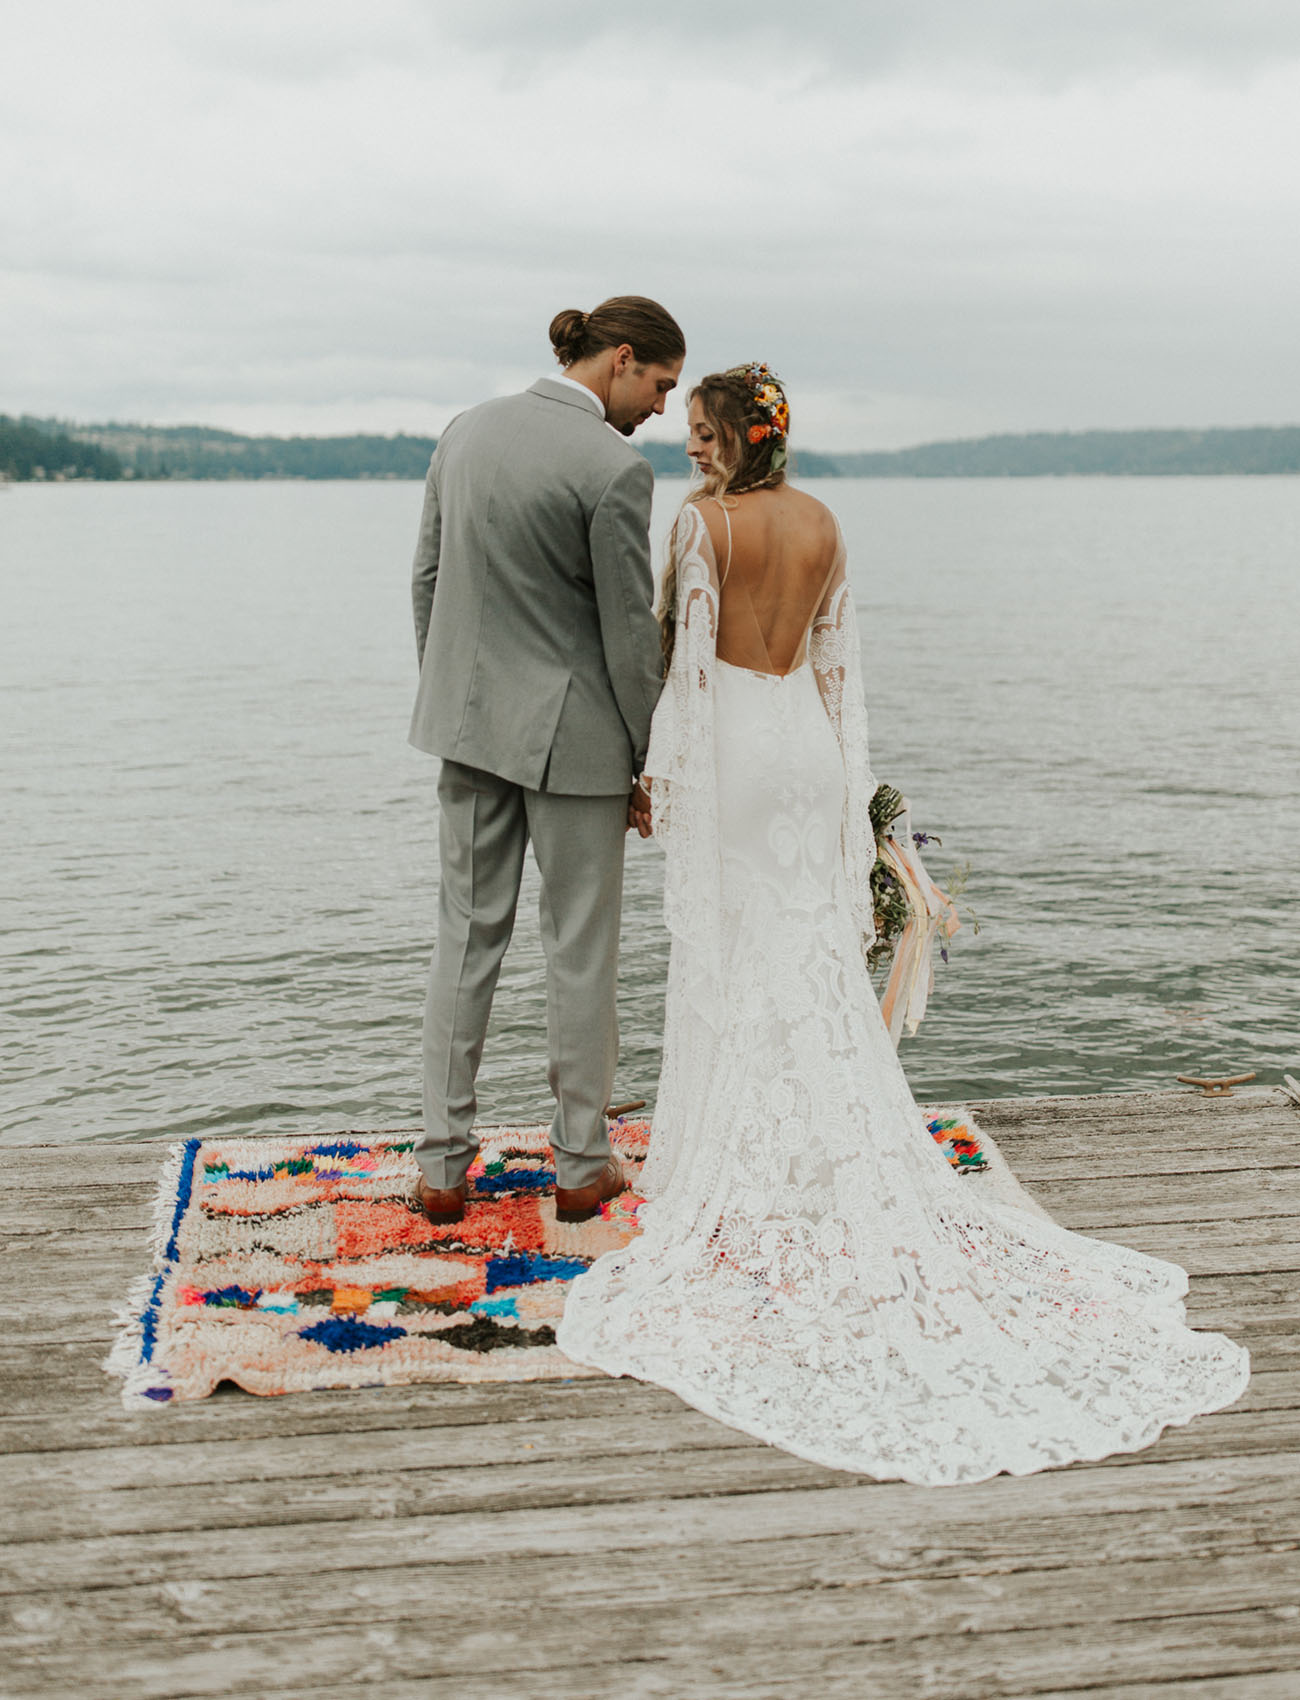 The wedding dress featured an open back for a sexy look